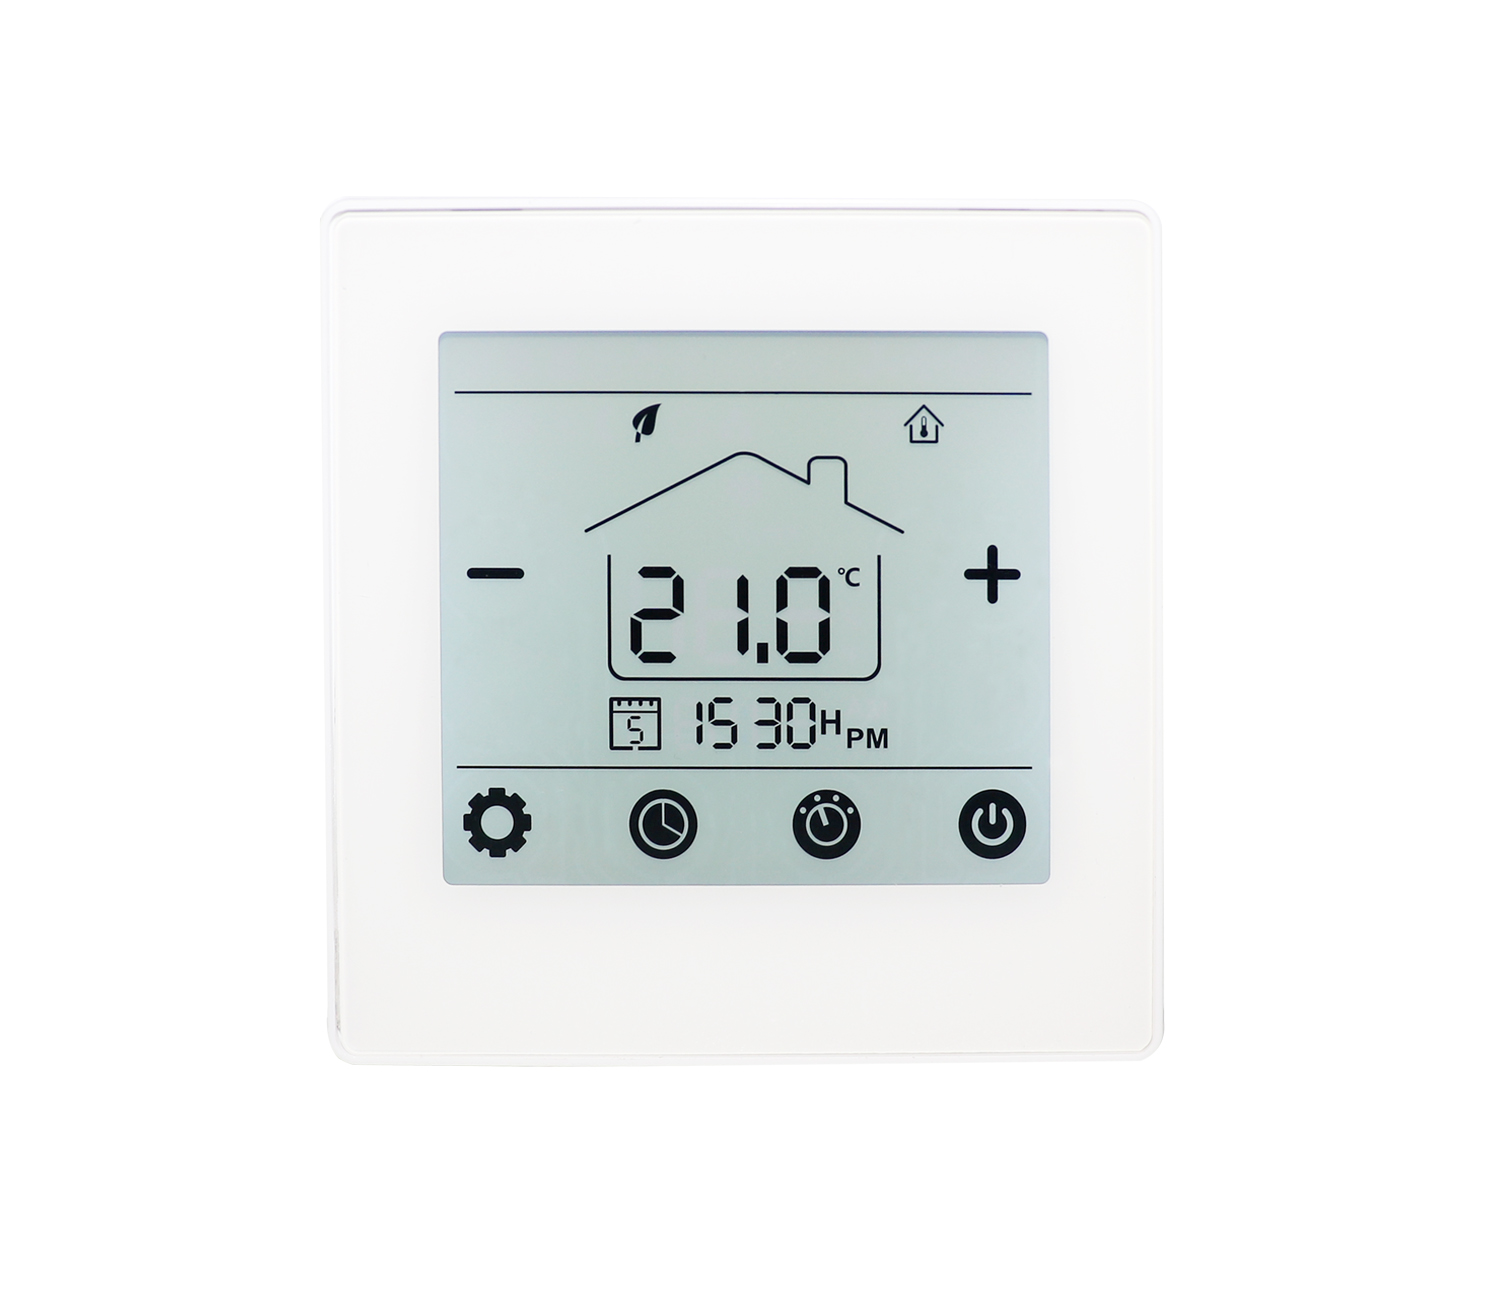 HT-09 Electric Heating Thermostat, Best Wifi Thermostat